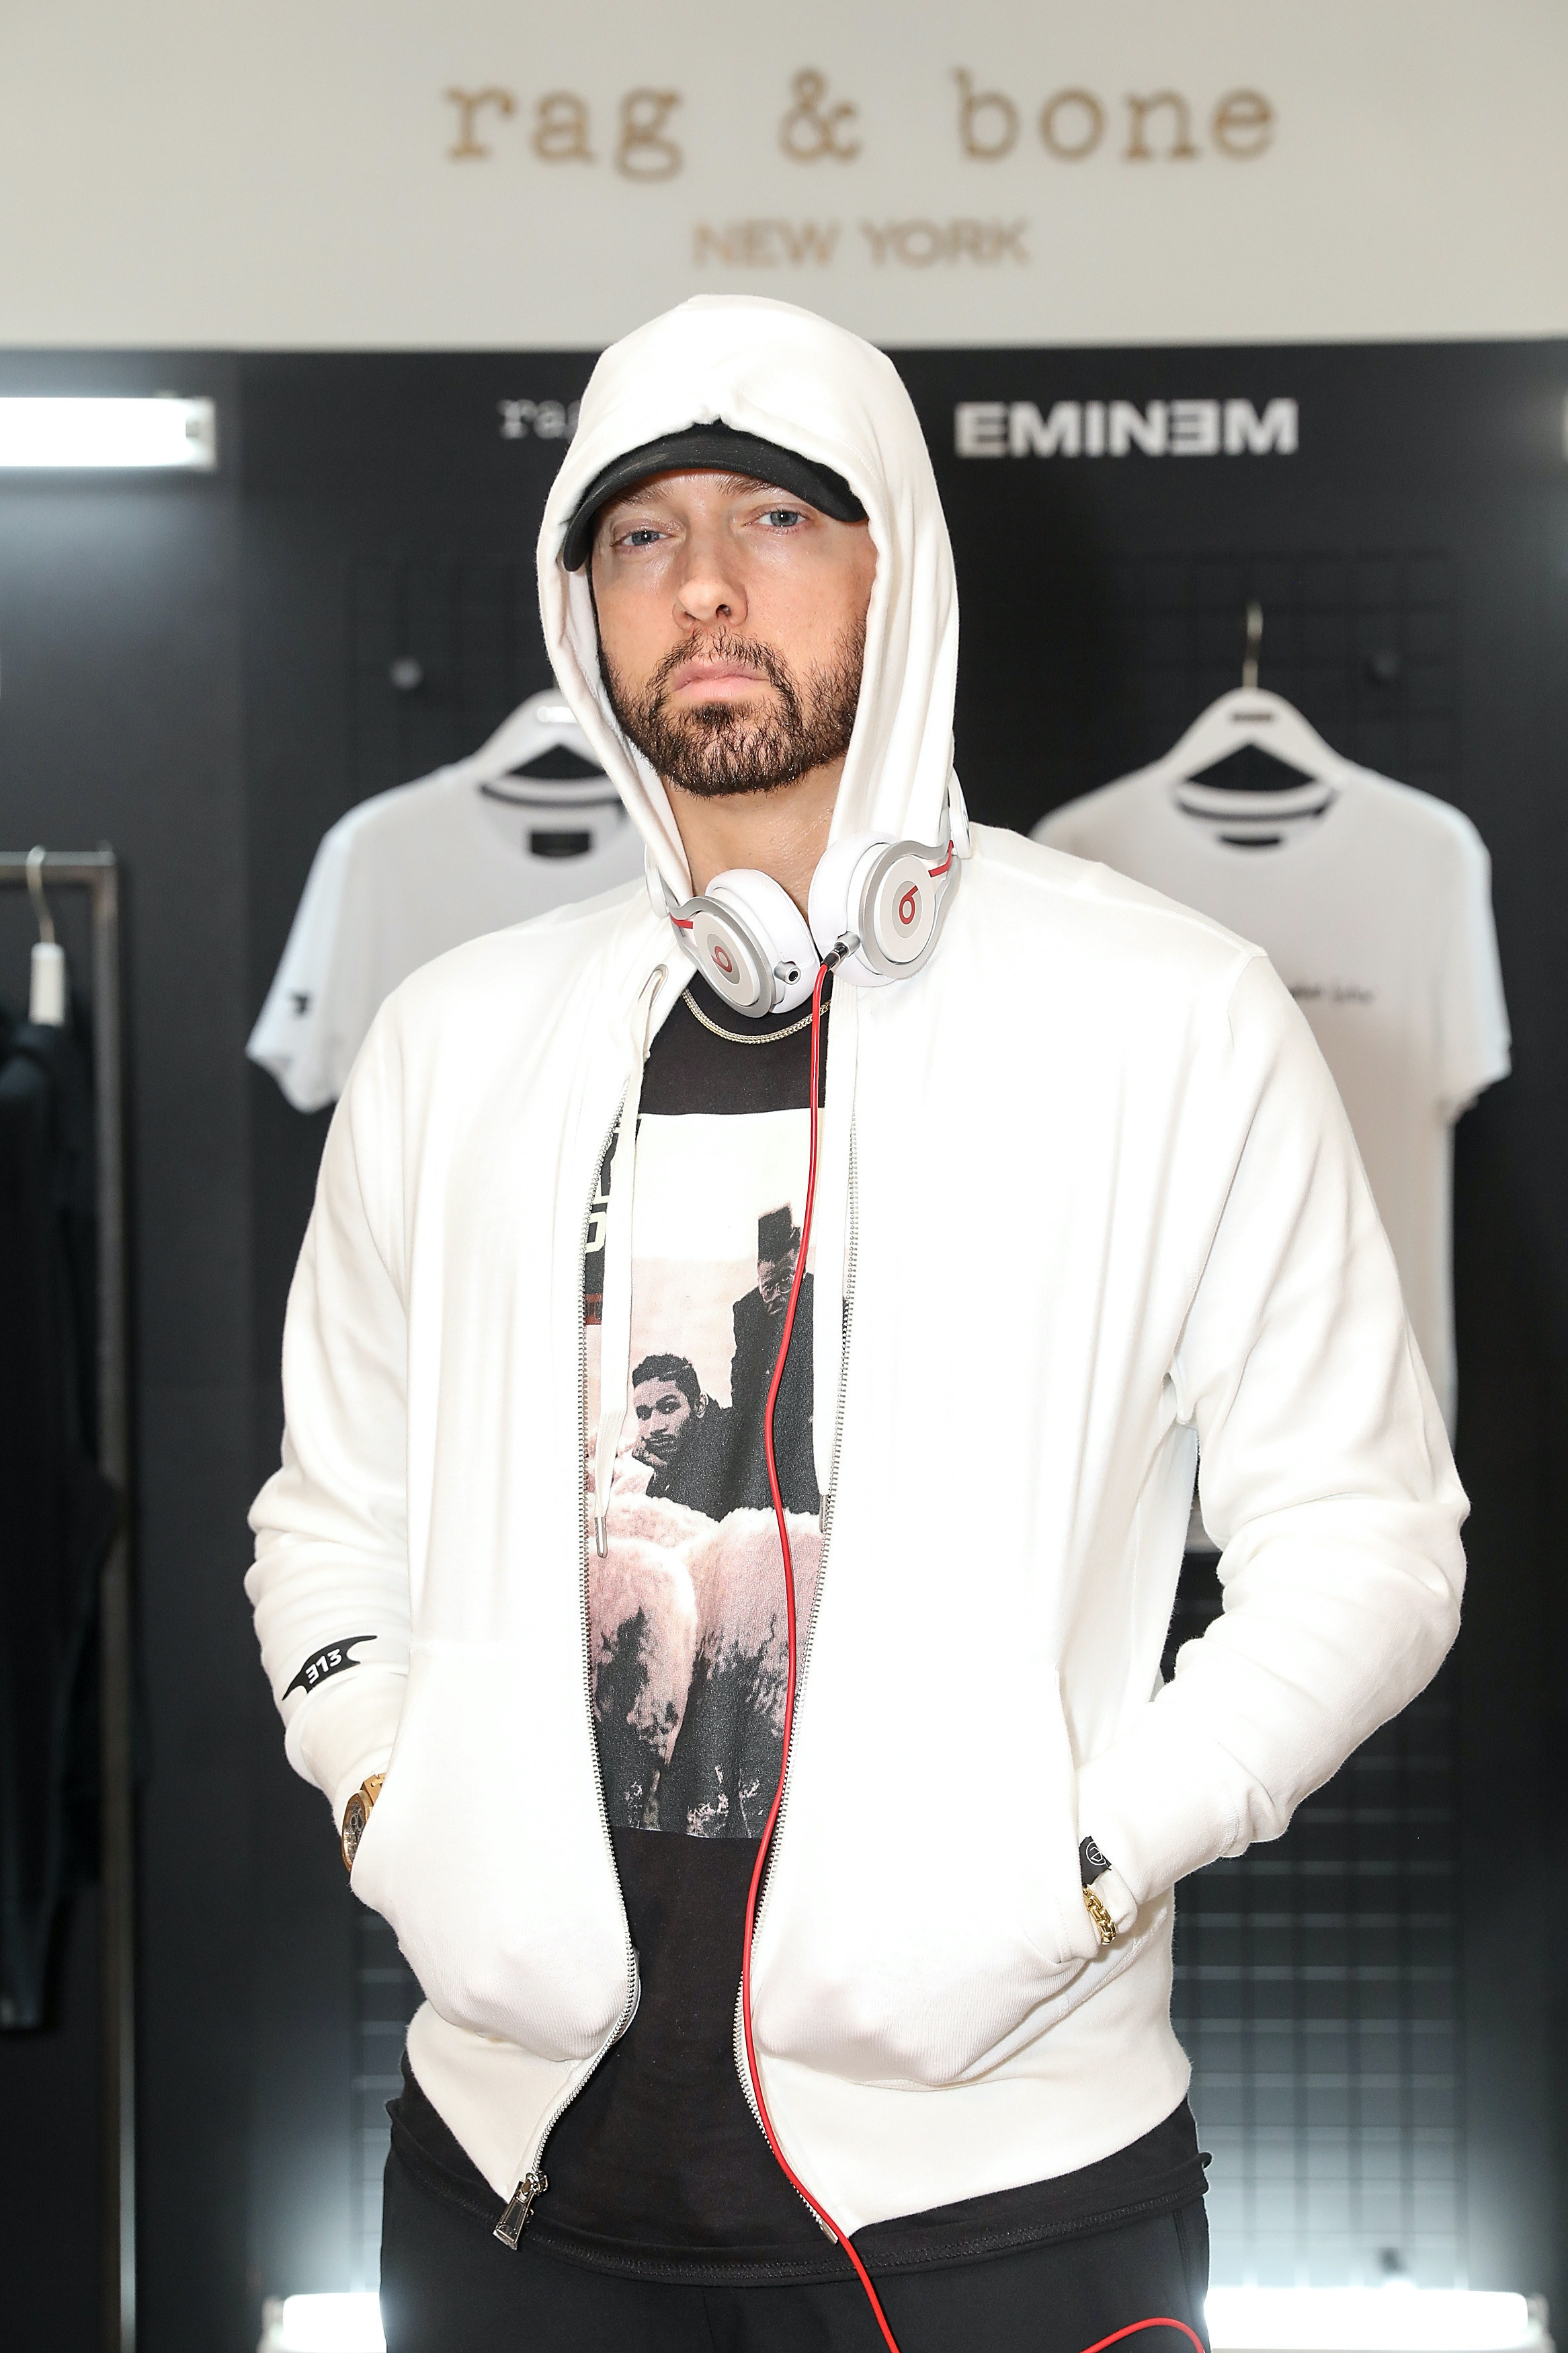 Eminem attends the rag & bone X Eminem London Pop-Up Opening on July 13, 2018 in London, England